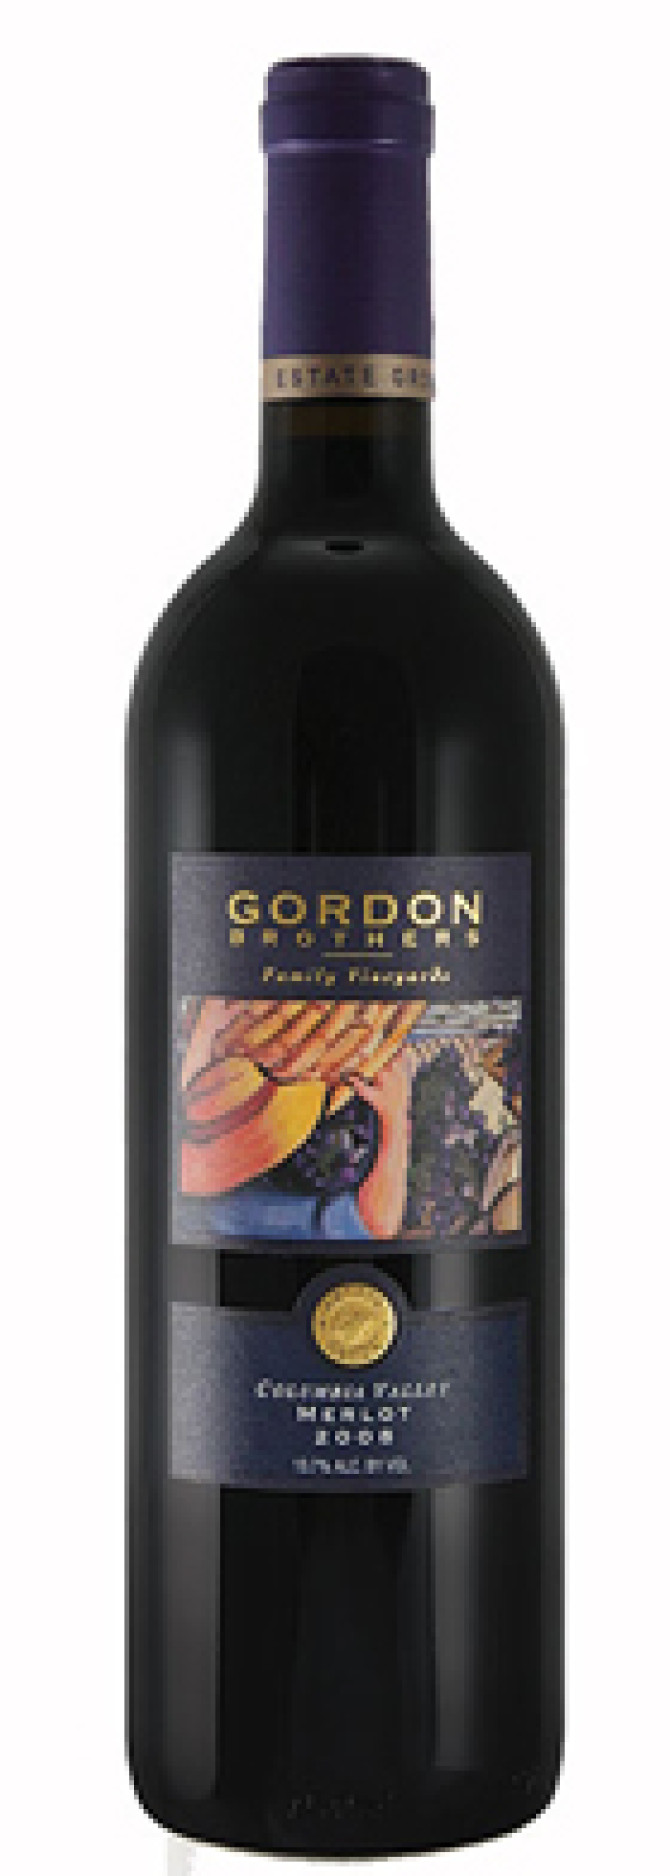 gordon-brothers-merlot-2008